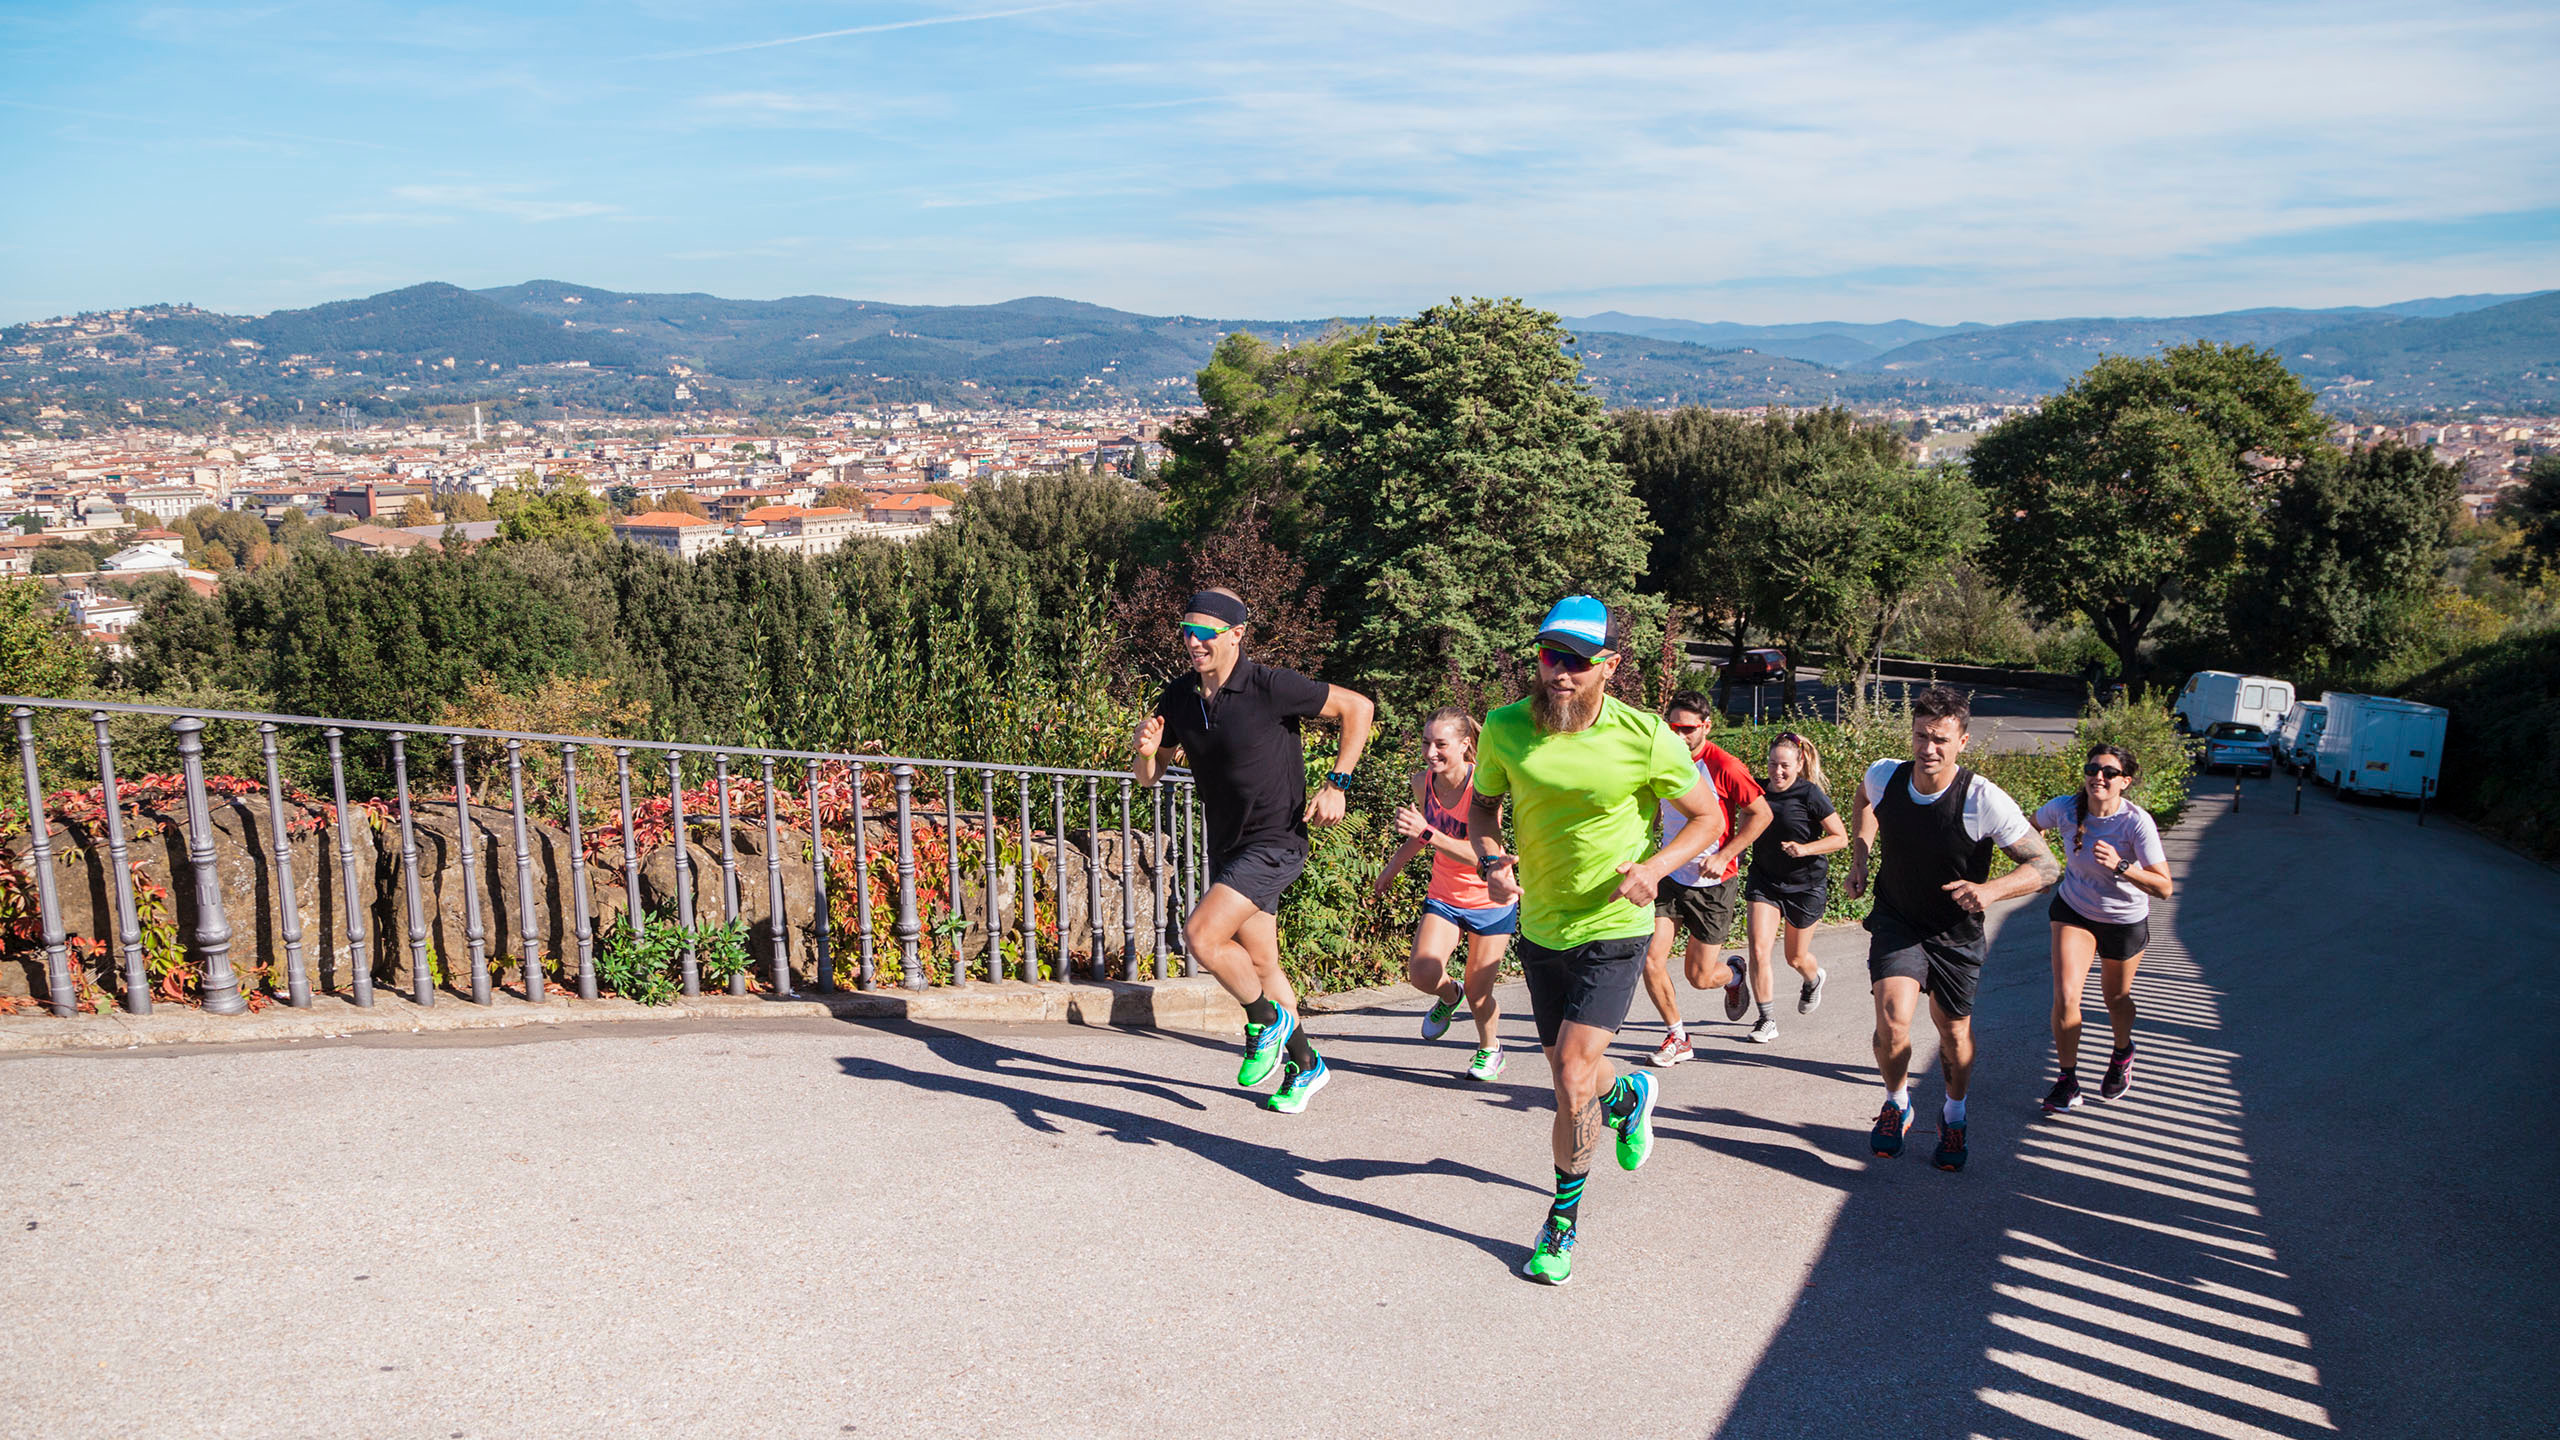 Florence Experience – Andrea & Matteo, The Triathletes 11